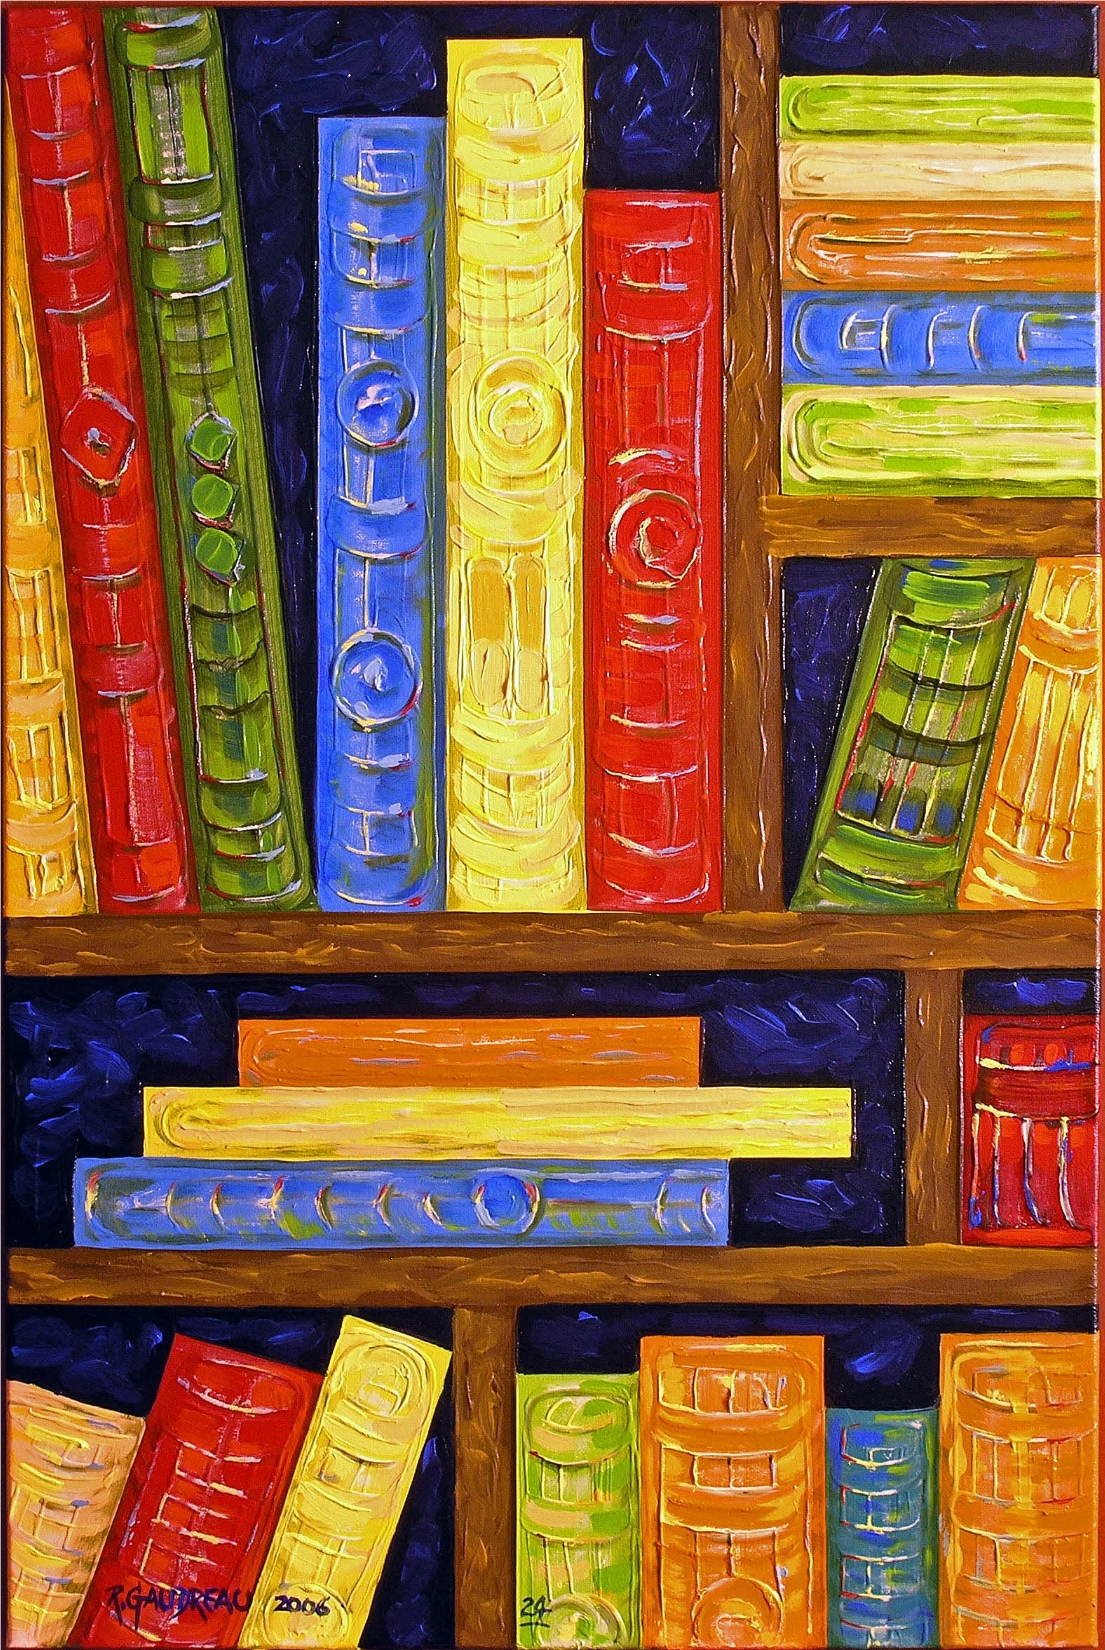 24  Books 2006 oil on canvas 36 x 24 inches